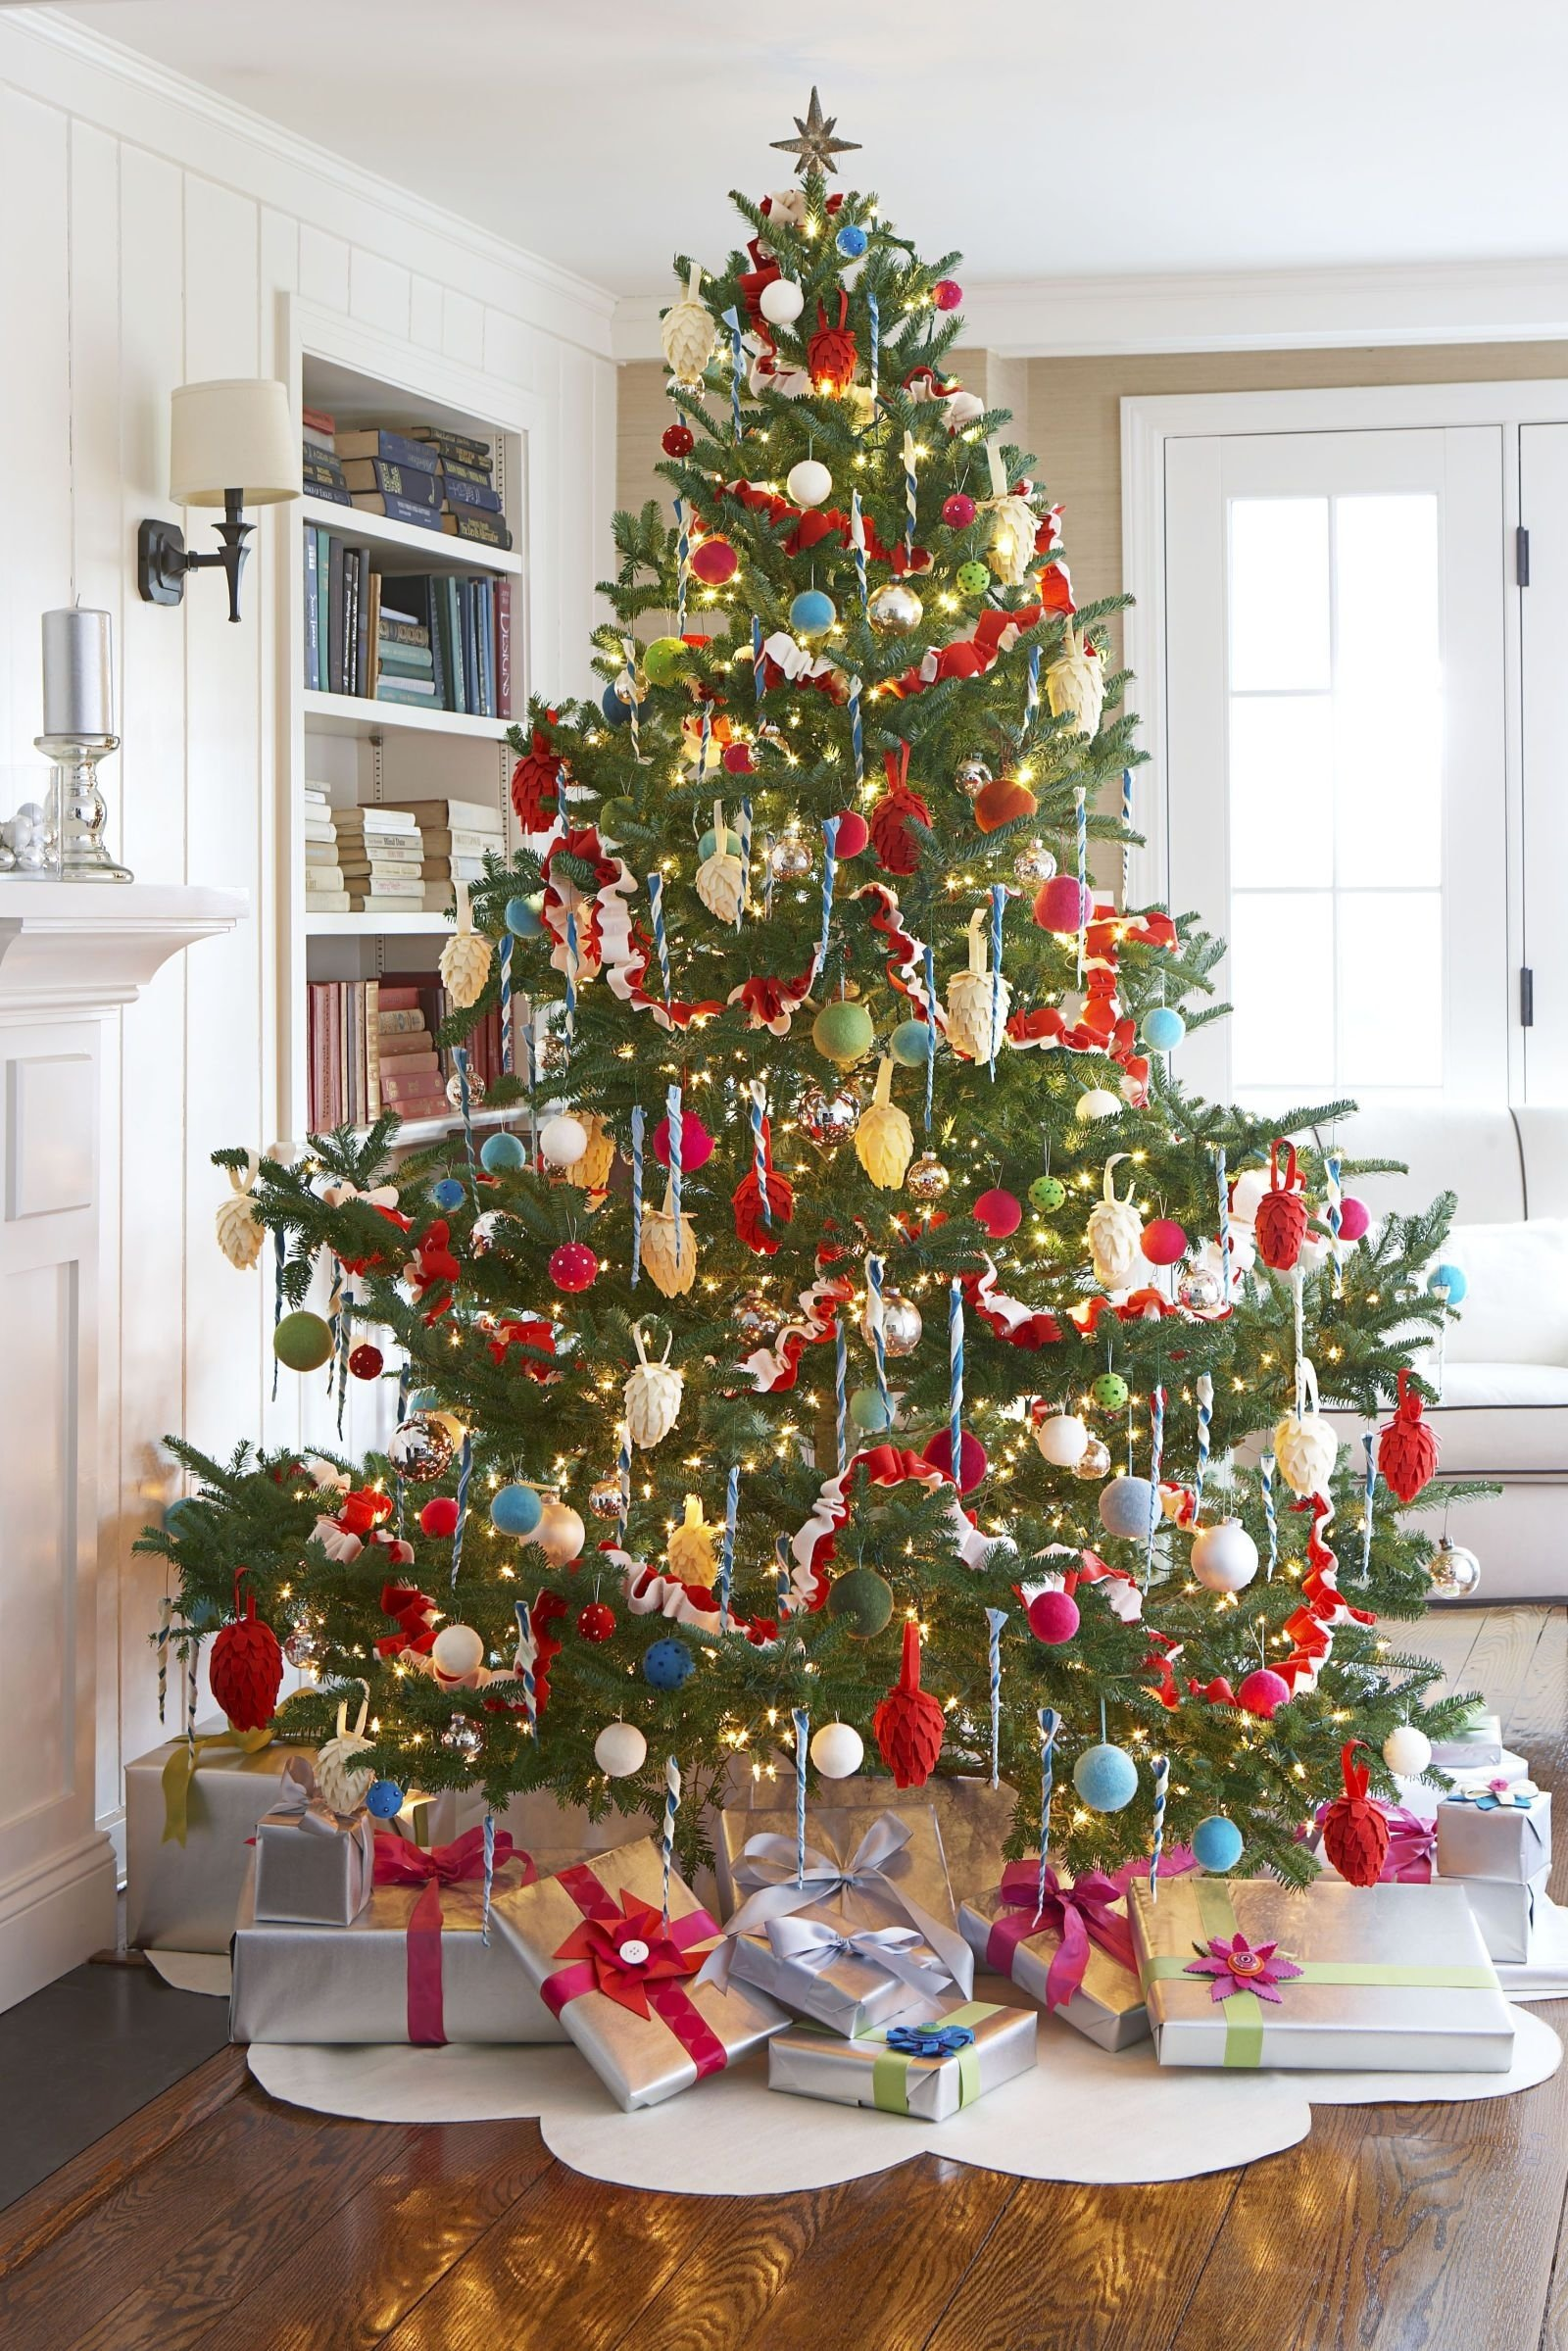 10 Ideal Ideas For Decorating Christmas Trees 37 christmas tree decoration ideas pictures of beautiful christmas 2 2020